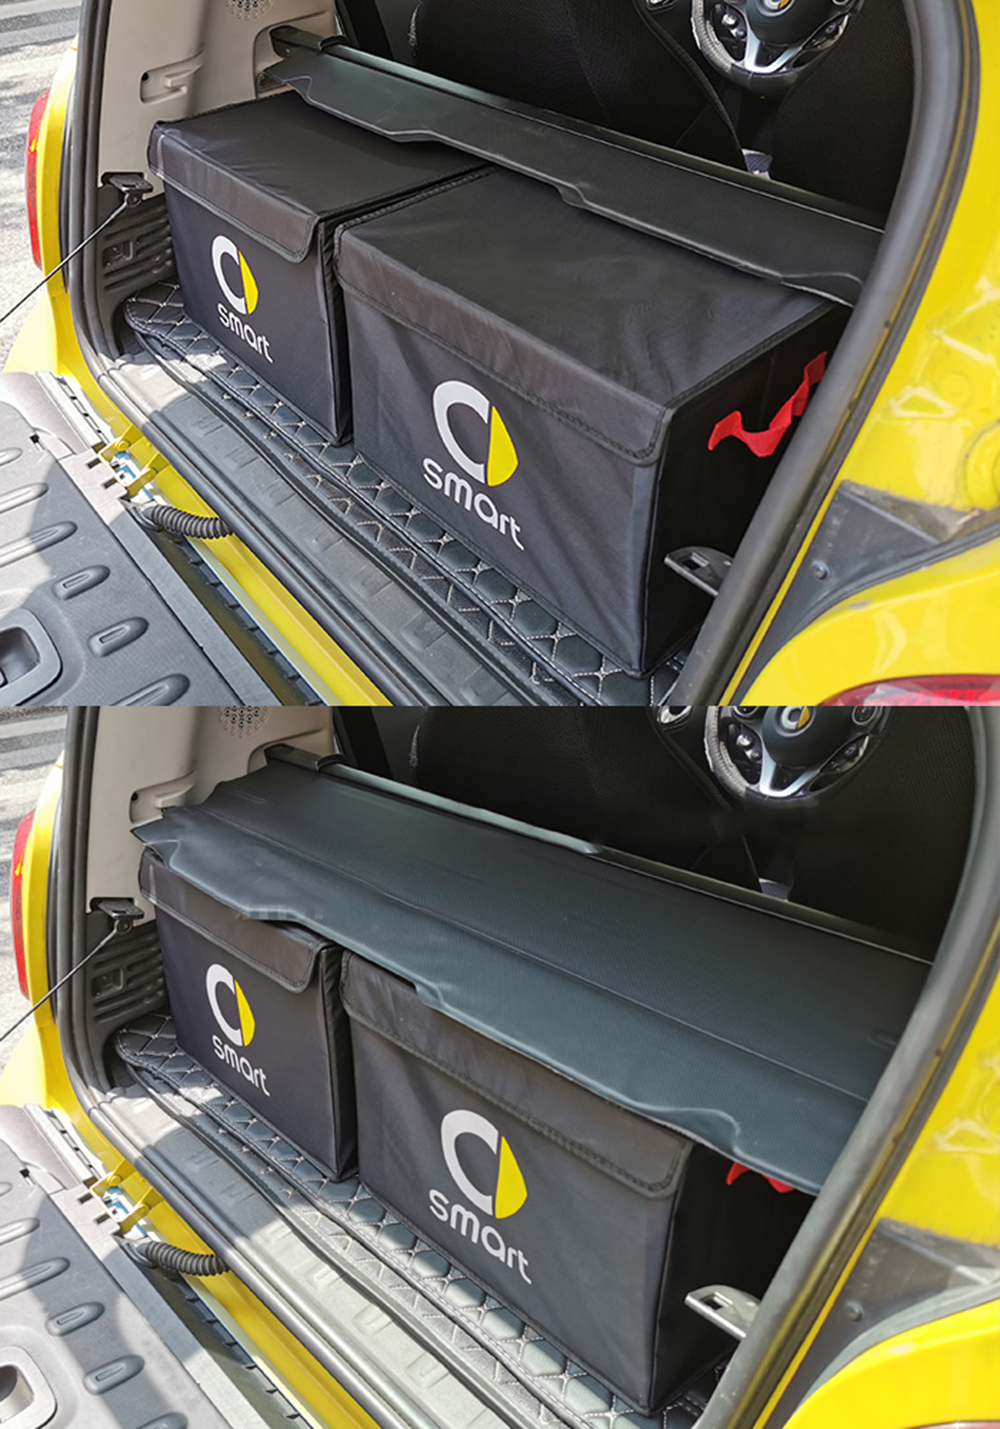 Car Trunk Storage Box Folding Basket Interior Stowing Tidying Organizer For Smart 451 453 fortwo forfour Universal Accesories